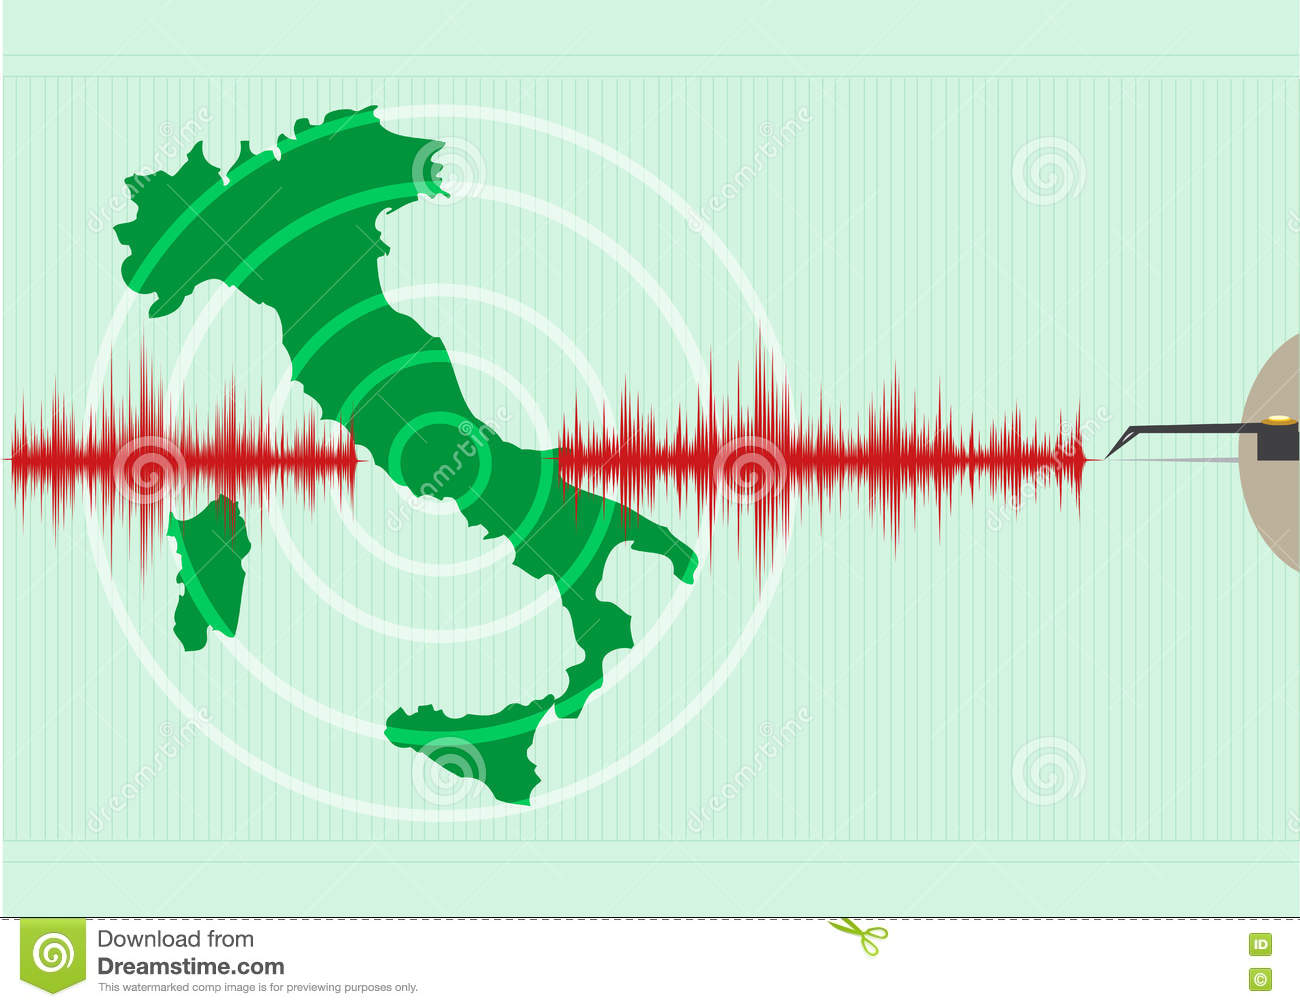 Italy Map Earthquake. Epicenter Recorded With A Seismic.